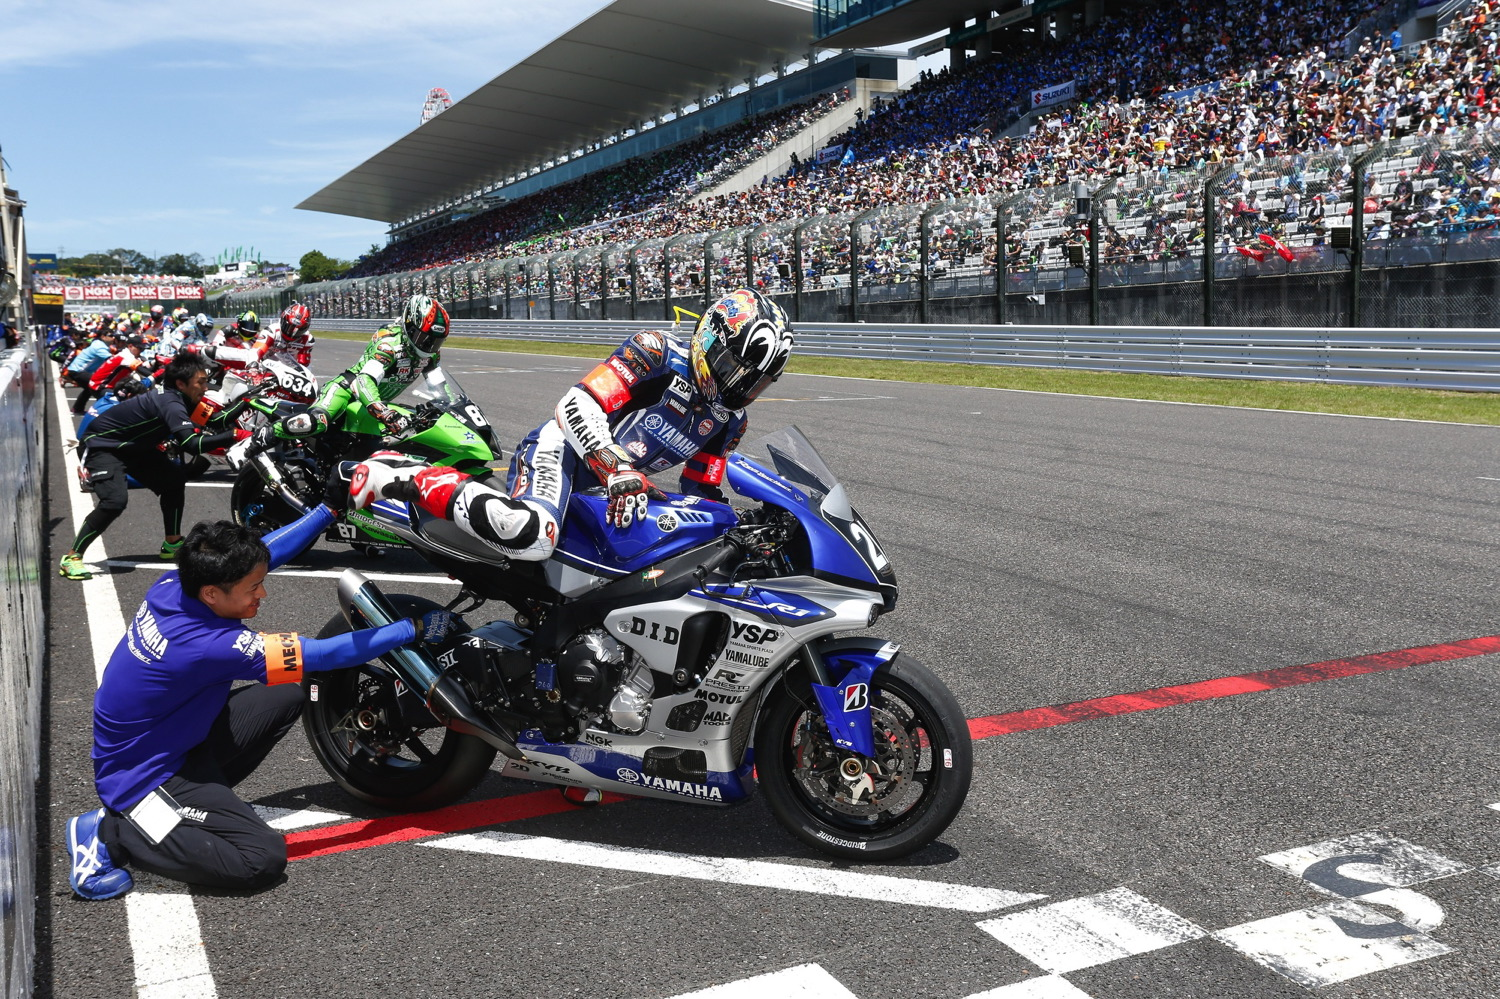 Suzuka 8 Hours: increased broadcast in 198 countries